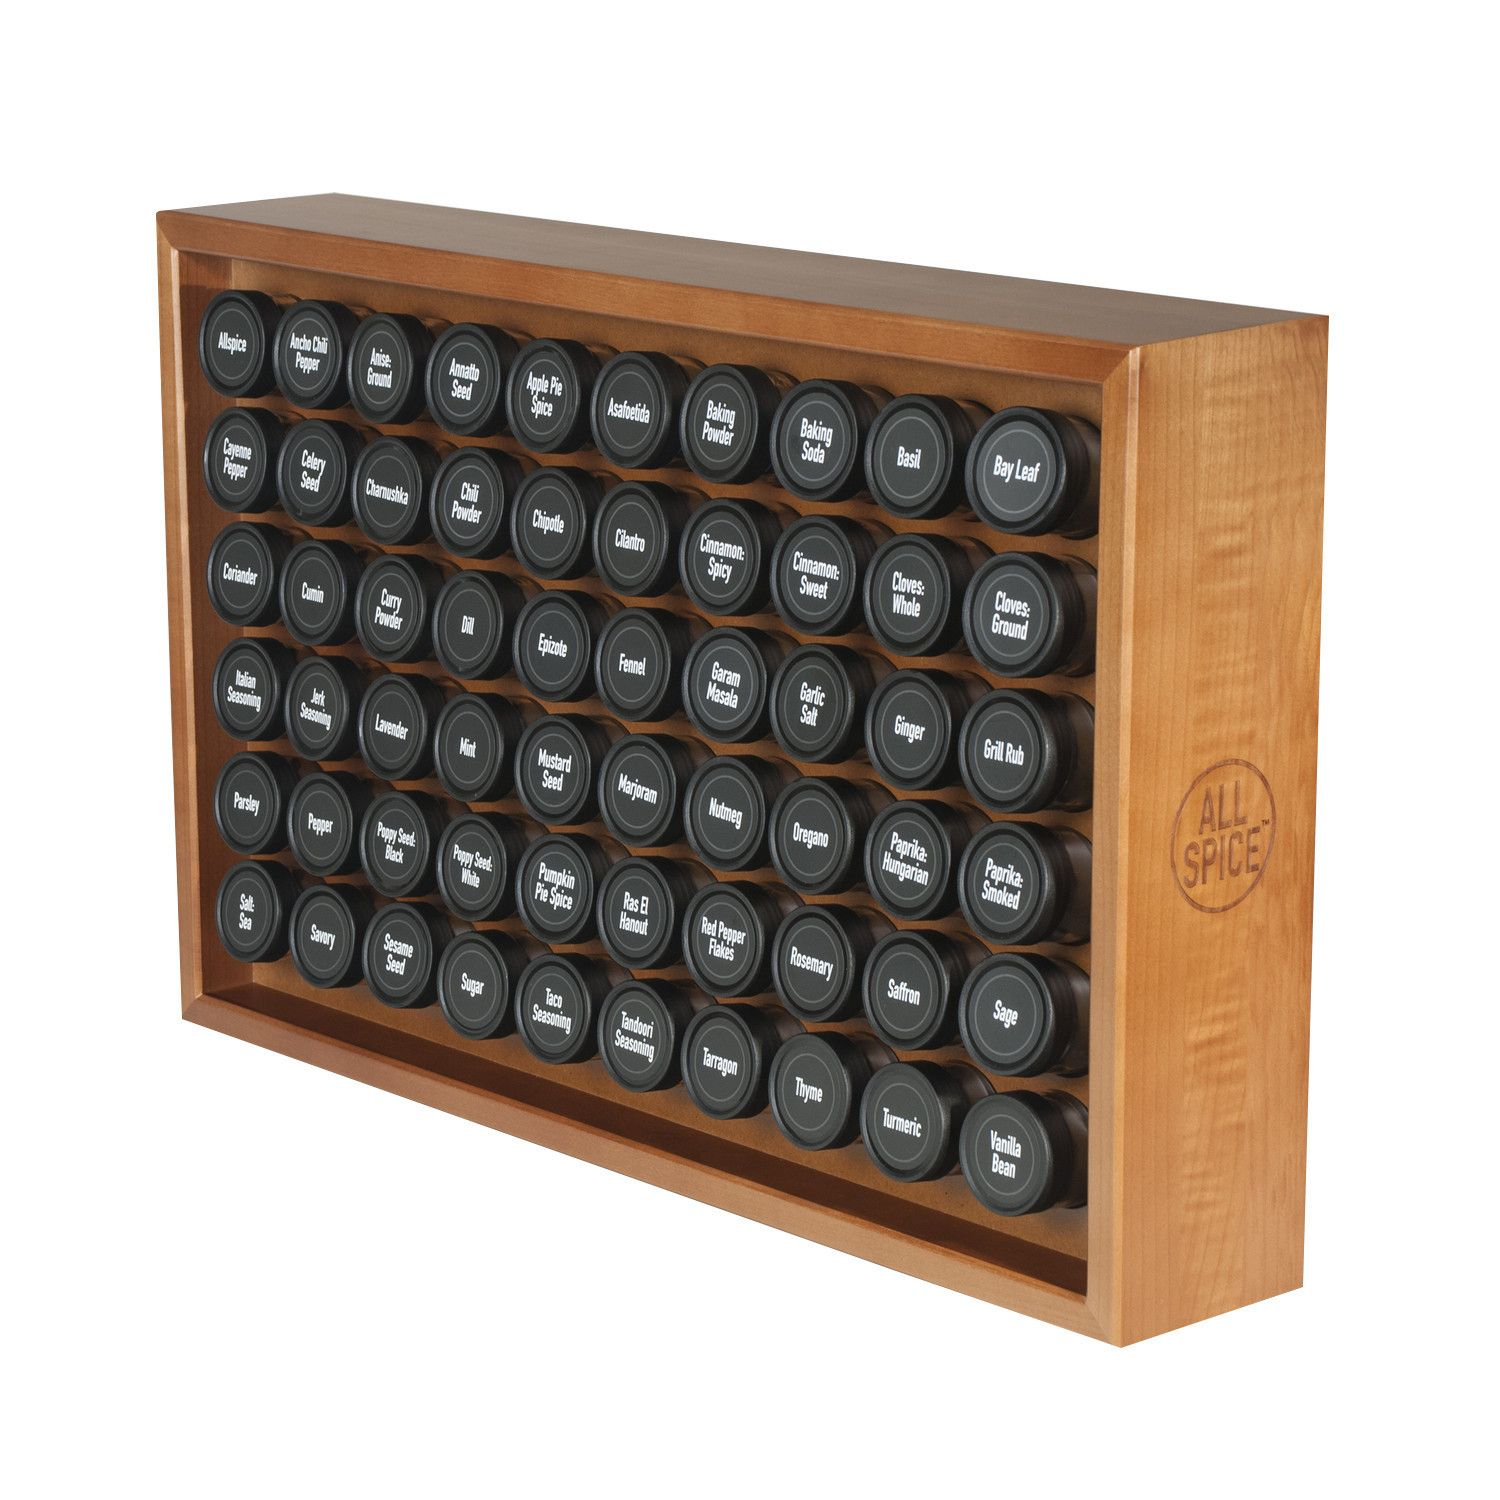 Dean And Deluca Spice Rack 60 Jar Spice Rack  Jar Organizations And Organizing